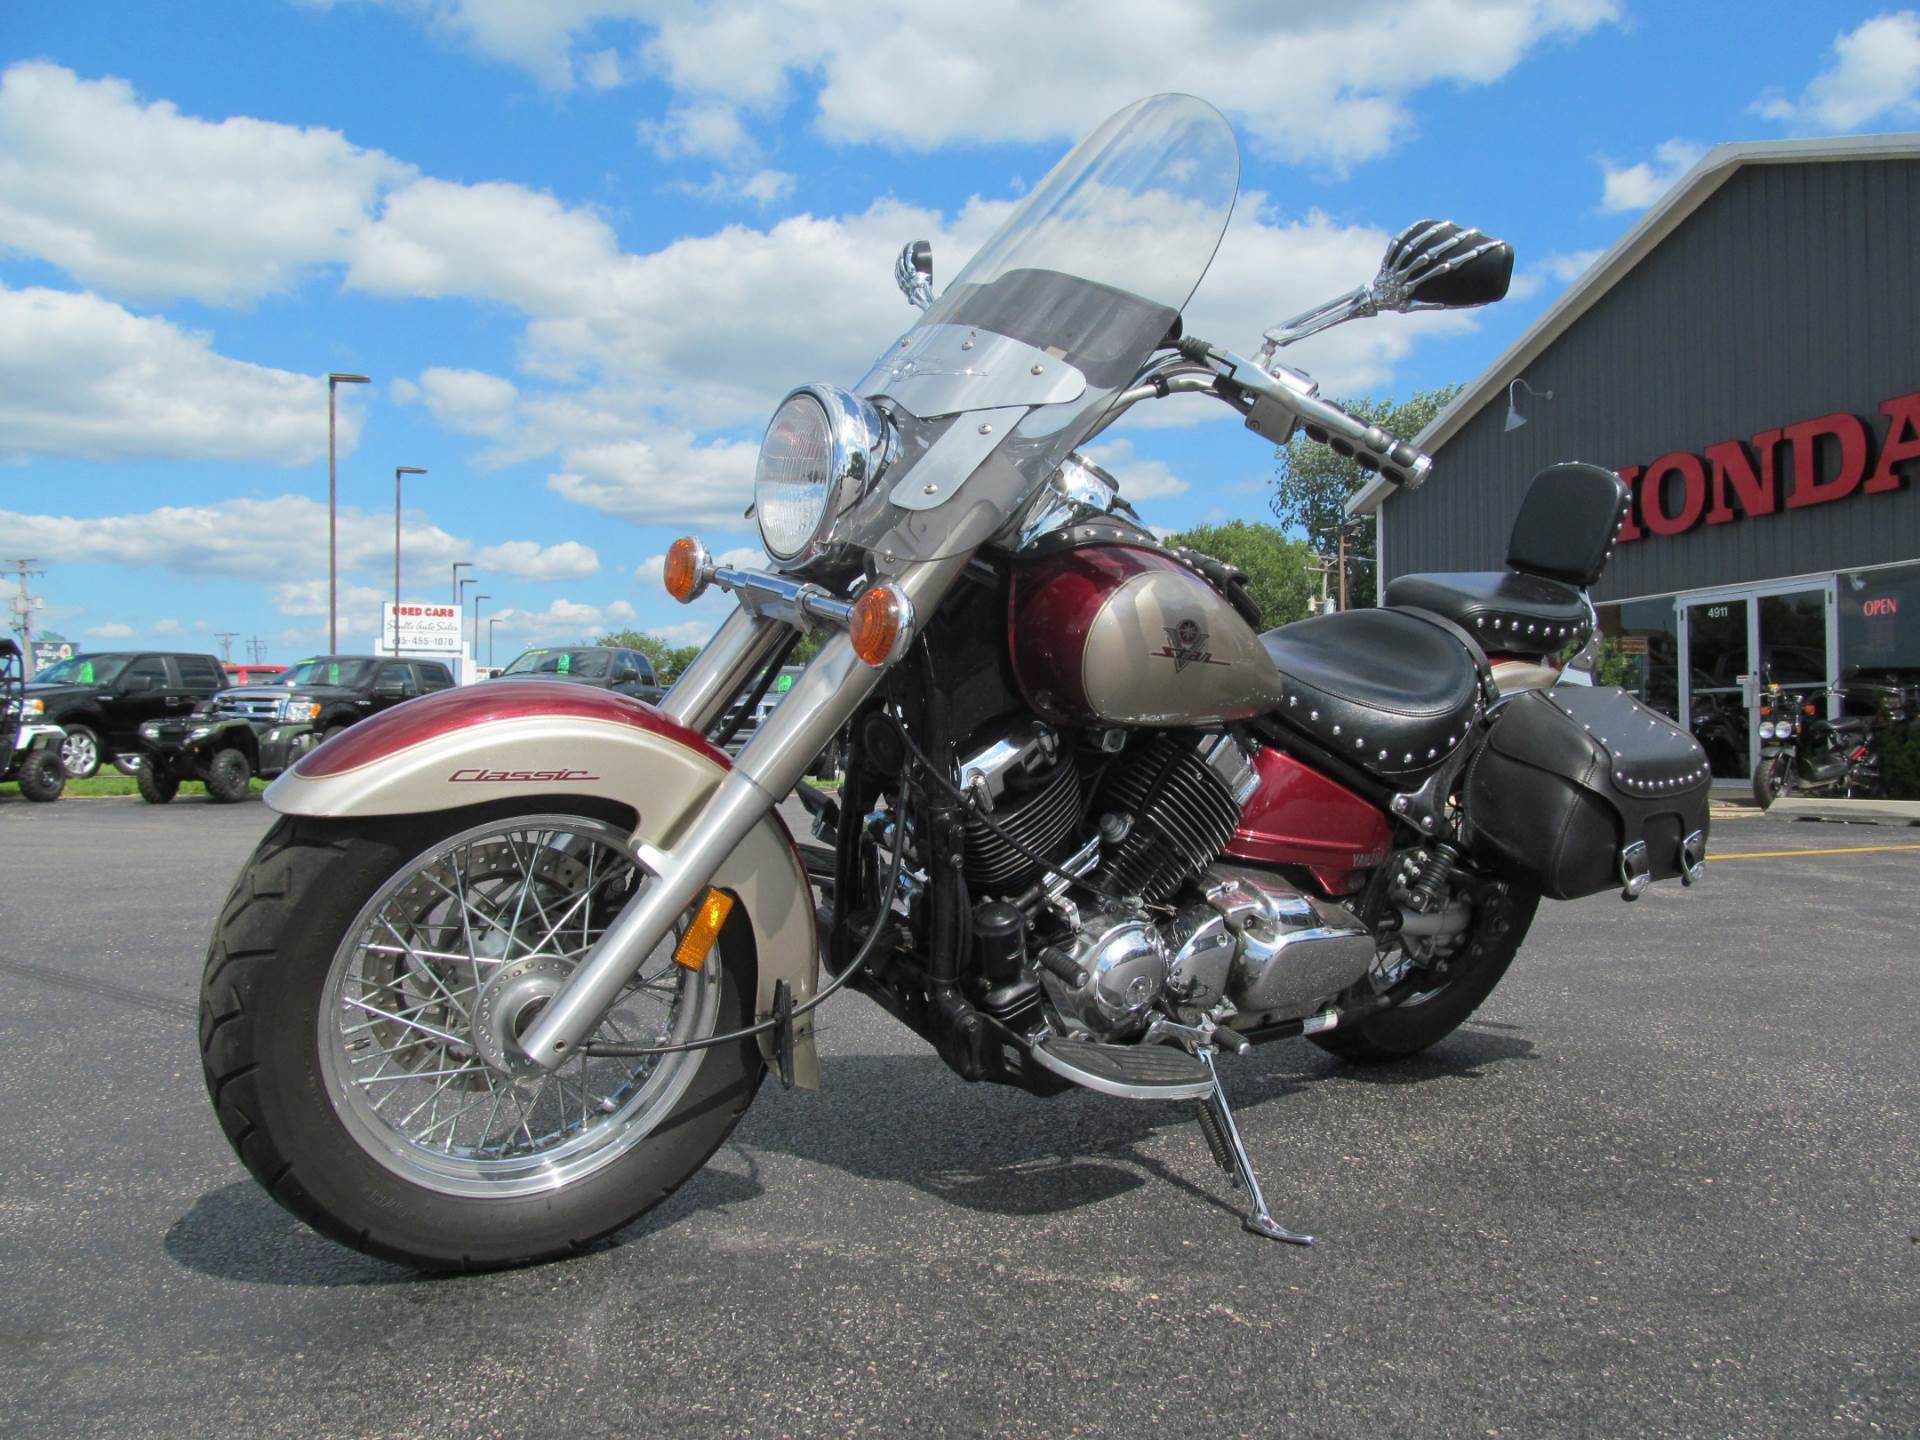 2003 Yamaha V Star 650 in Crystal Lake, Illinois - Photo 2